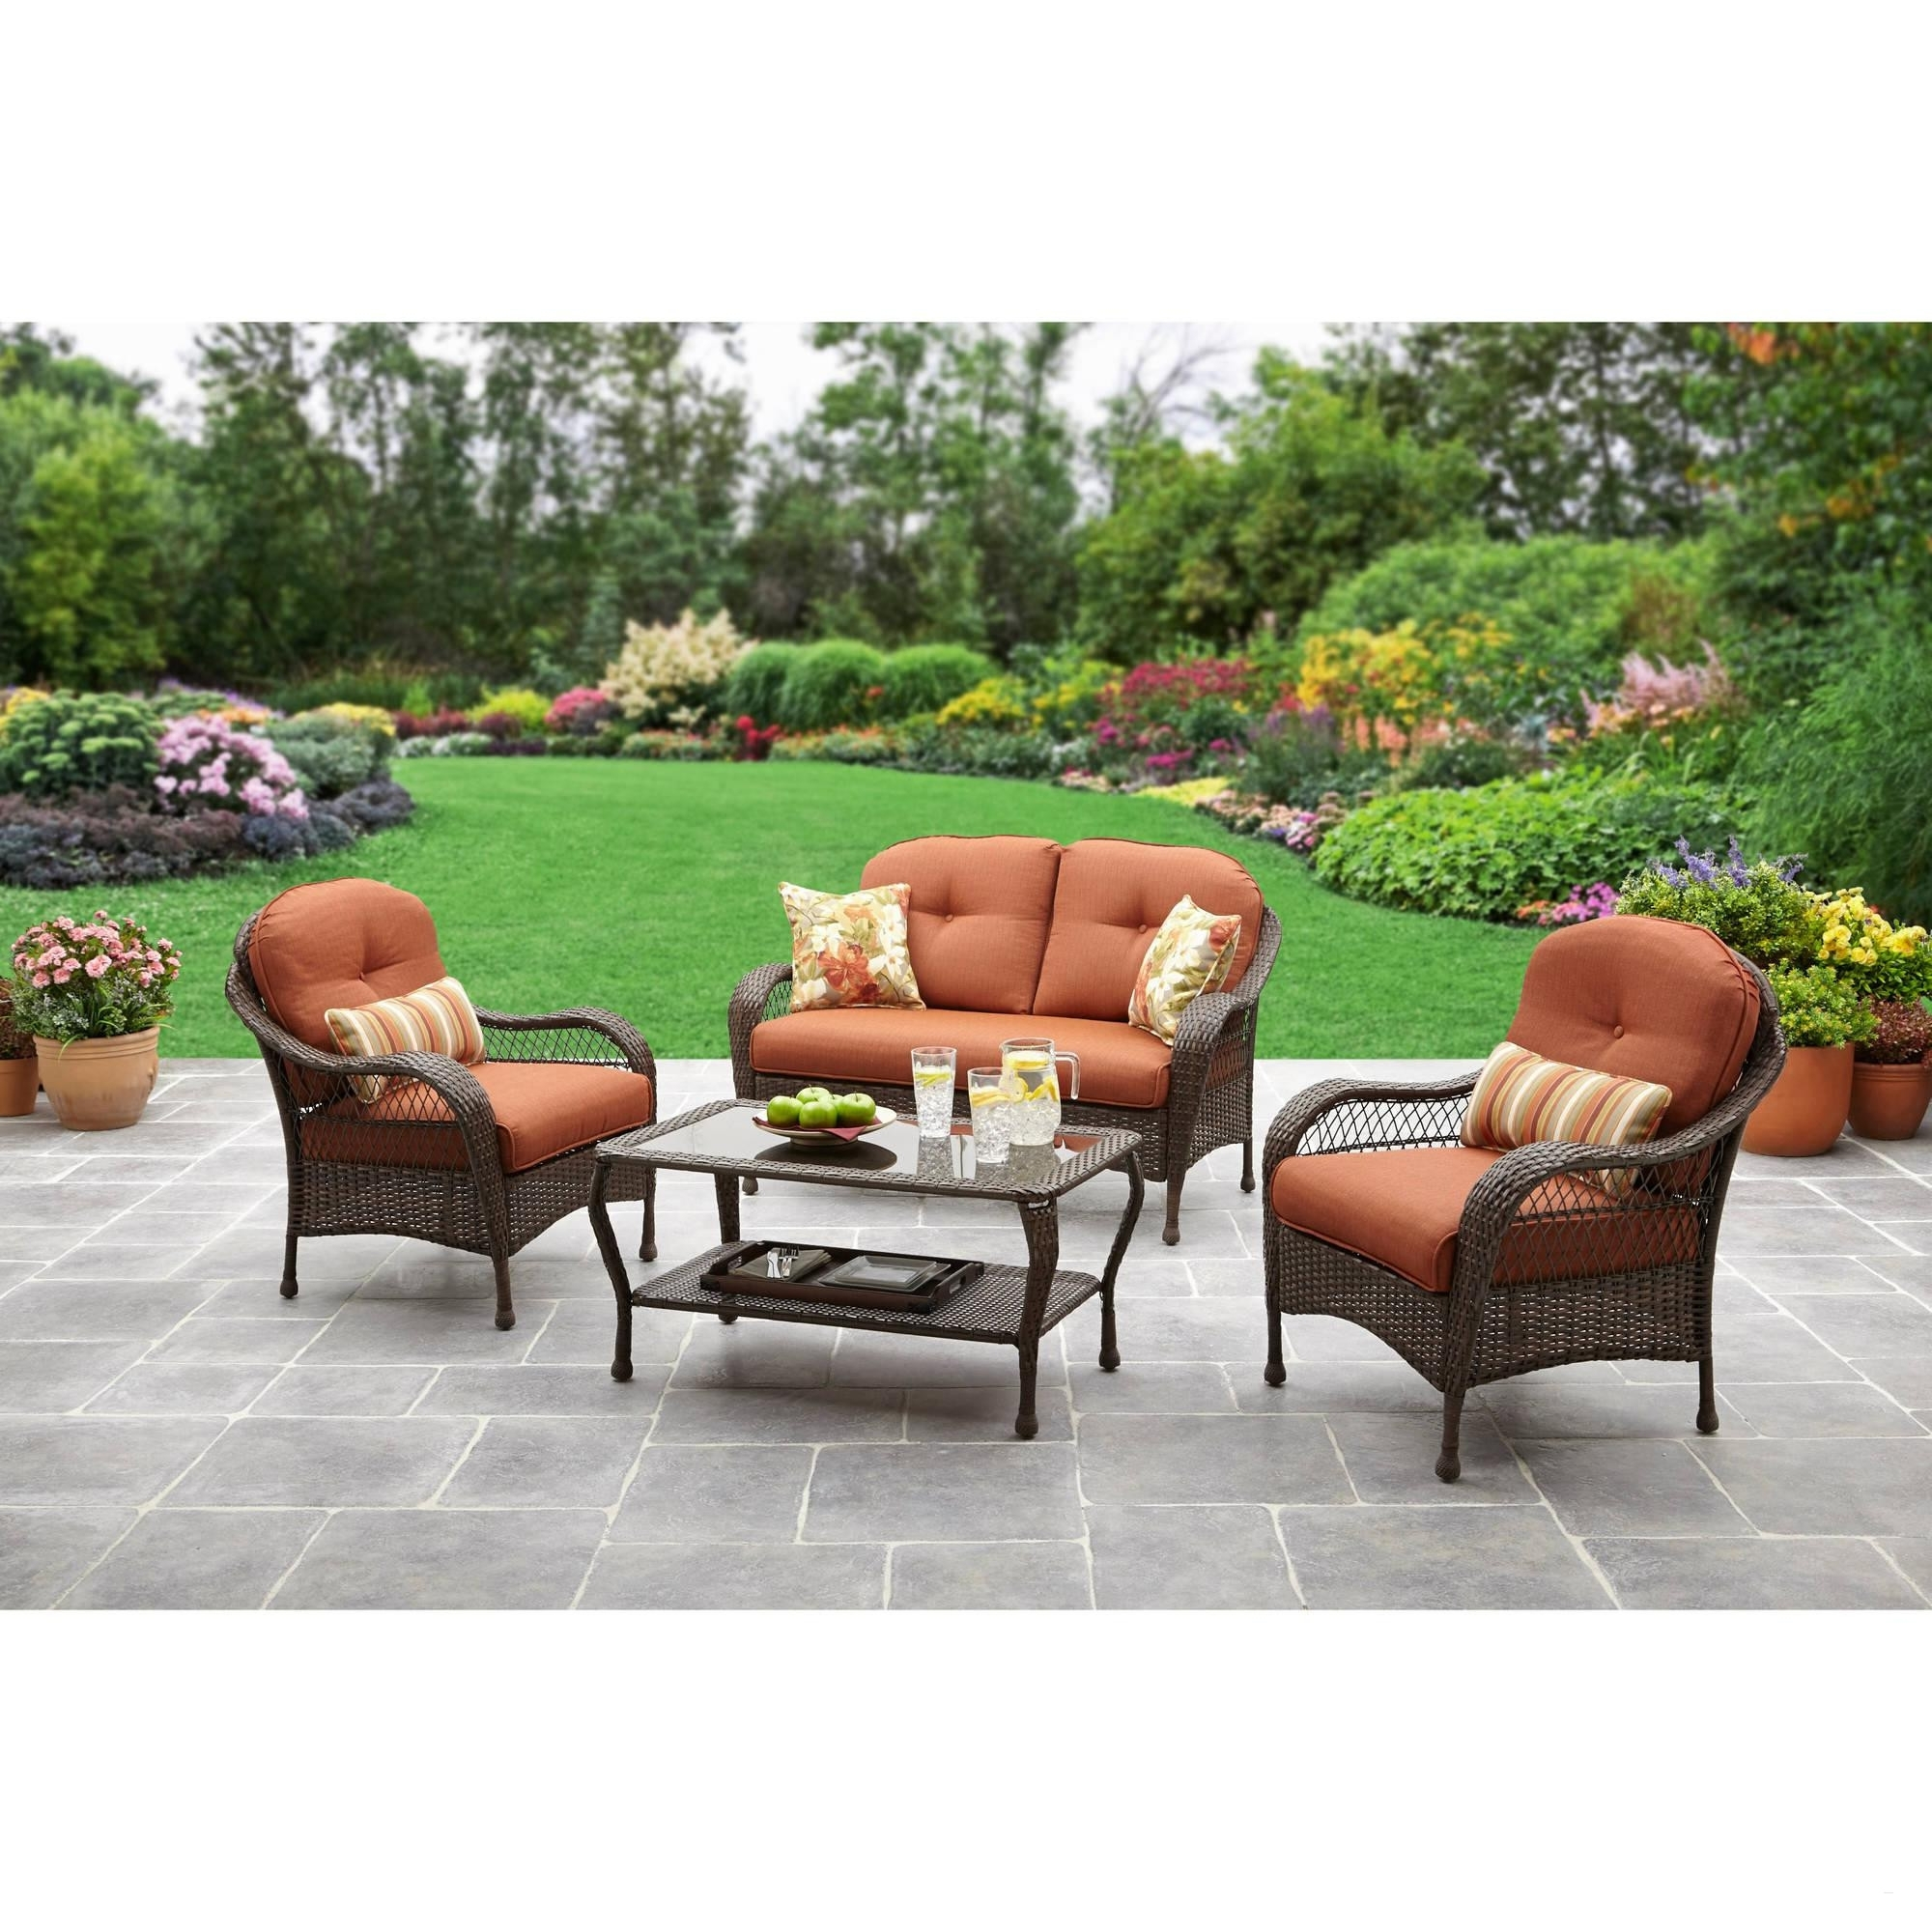 Wonderful Sears Outdoor Cushions – Bomelconsult Inside Most Popular Sears Patio Furniture Conversation Sets (View 15 of 15)